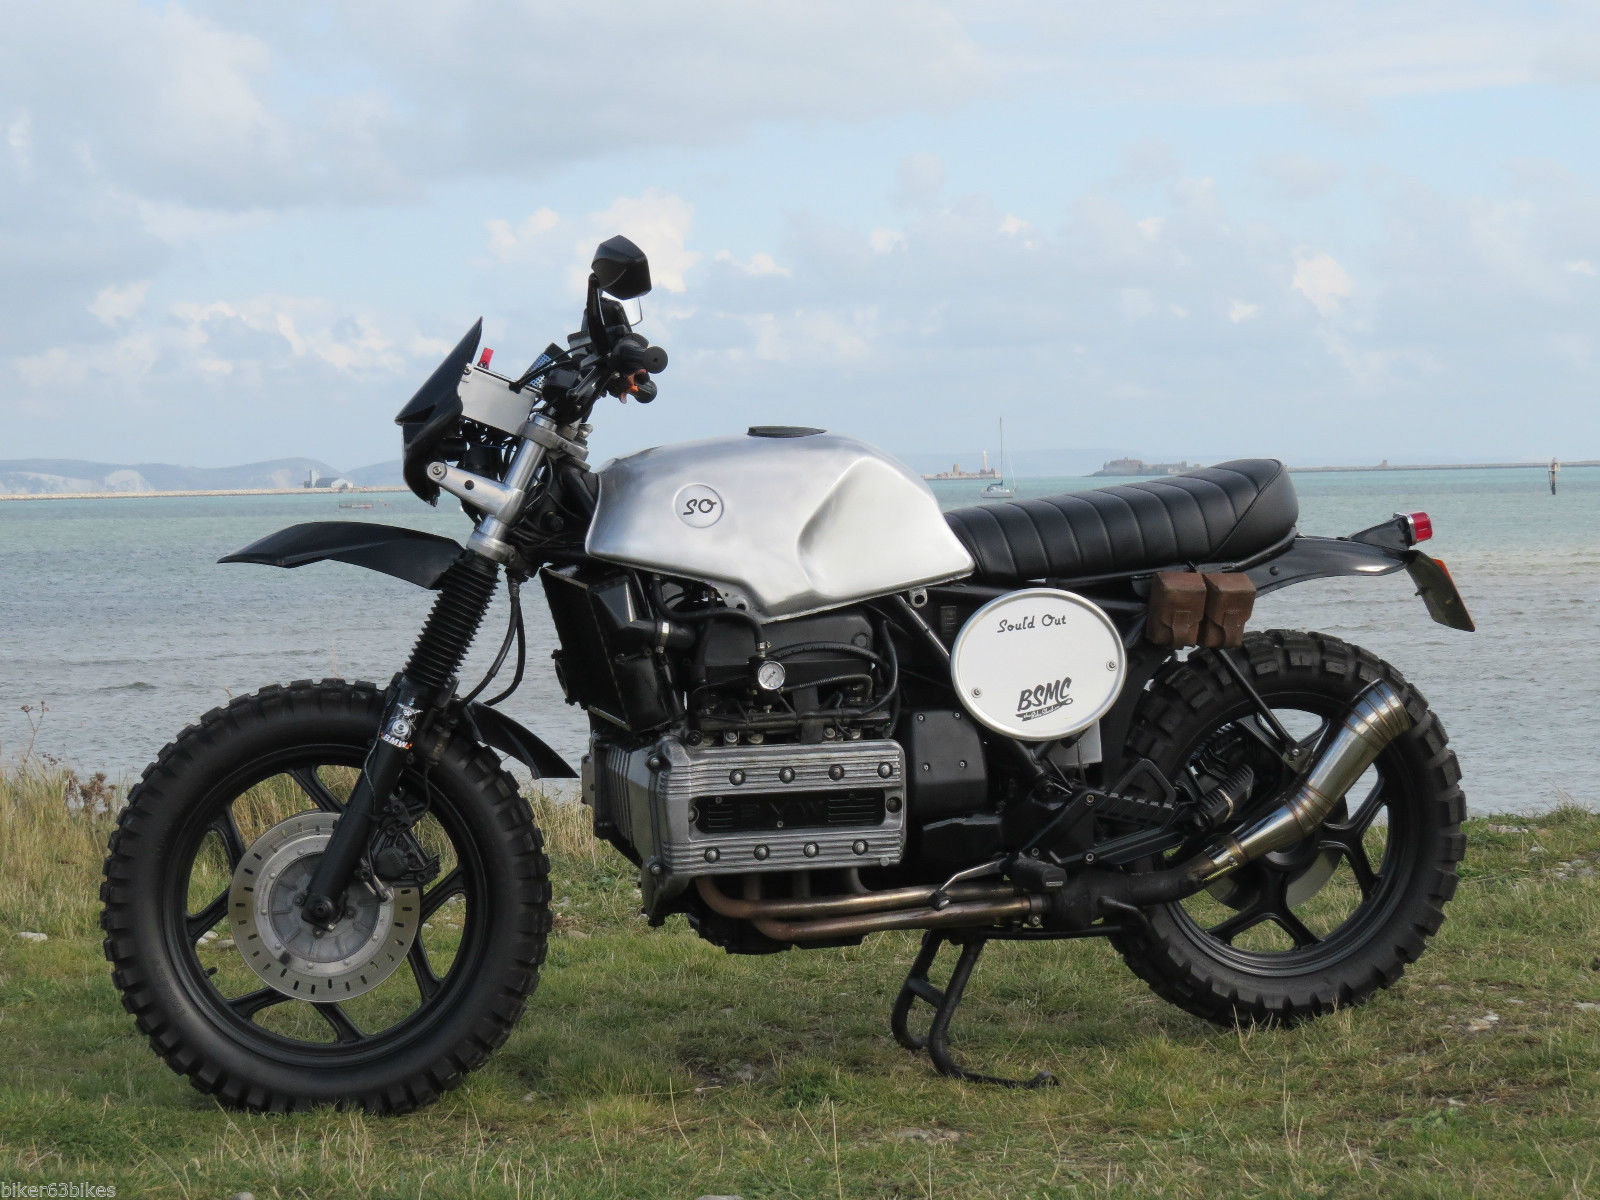 bmw k100 scrambler tracker cafe racer brat bespoke quality. Black Bedroom Furniture Sets. Home Design Ideas